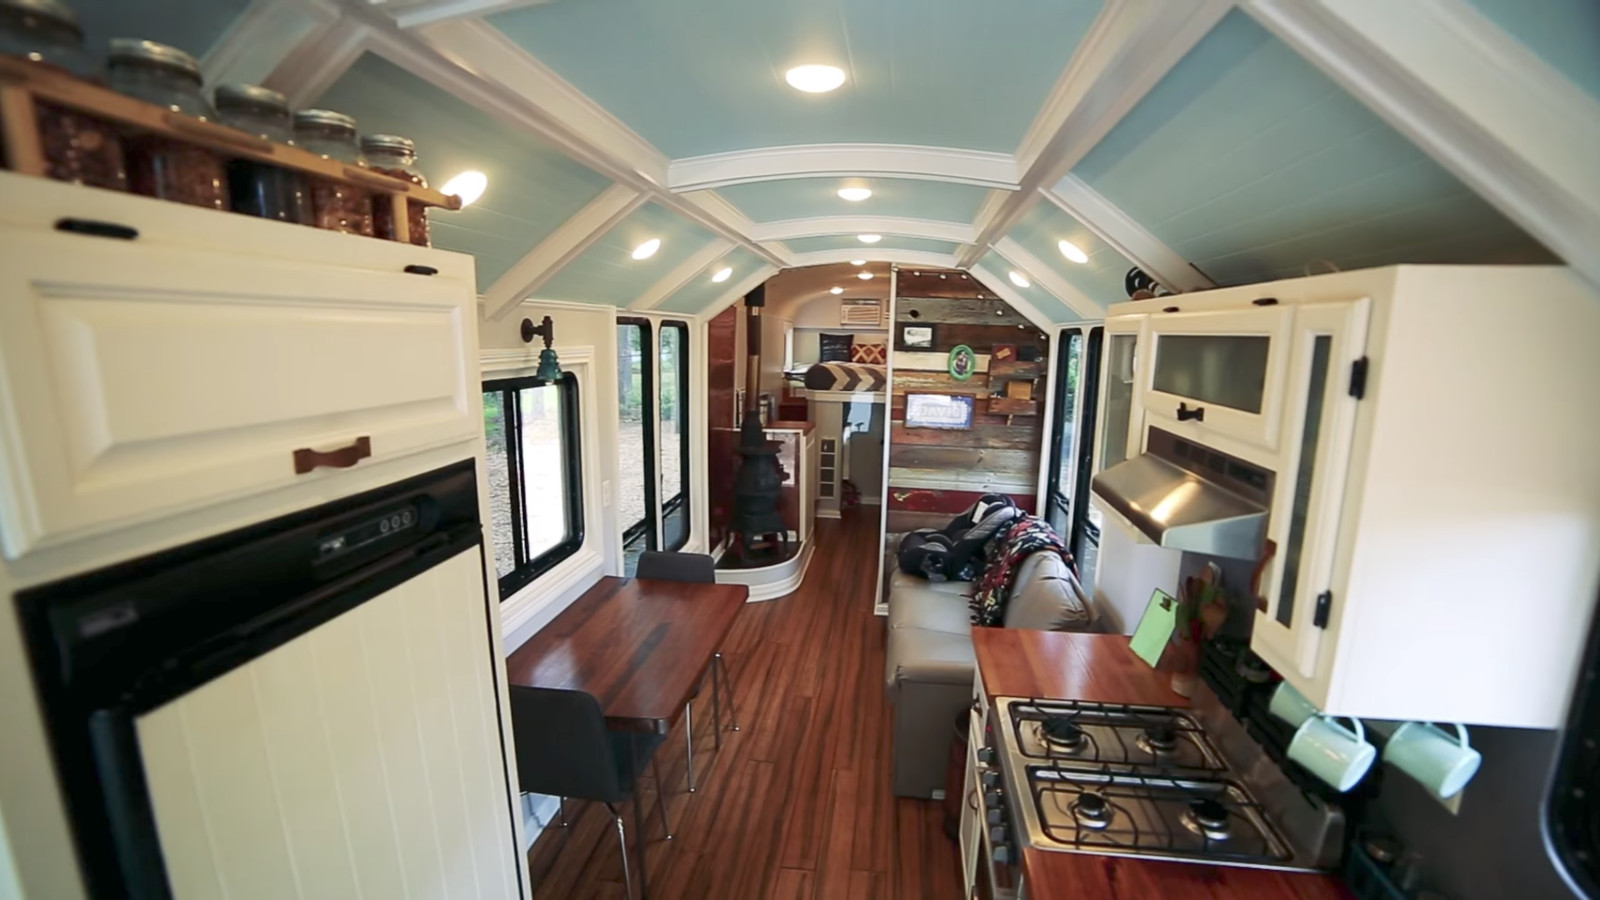 This School Bus Conversion May Be The Most Impressive One